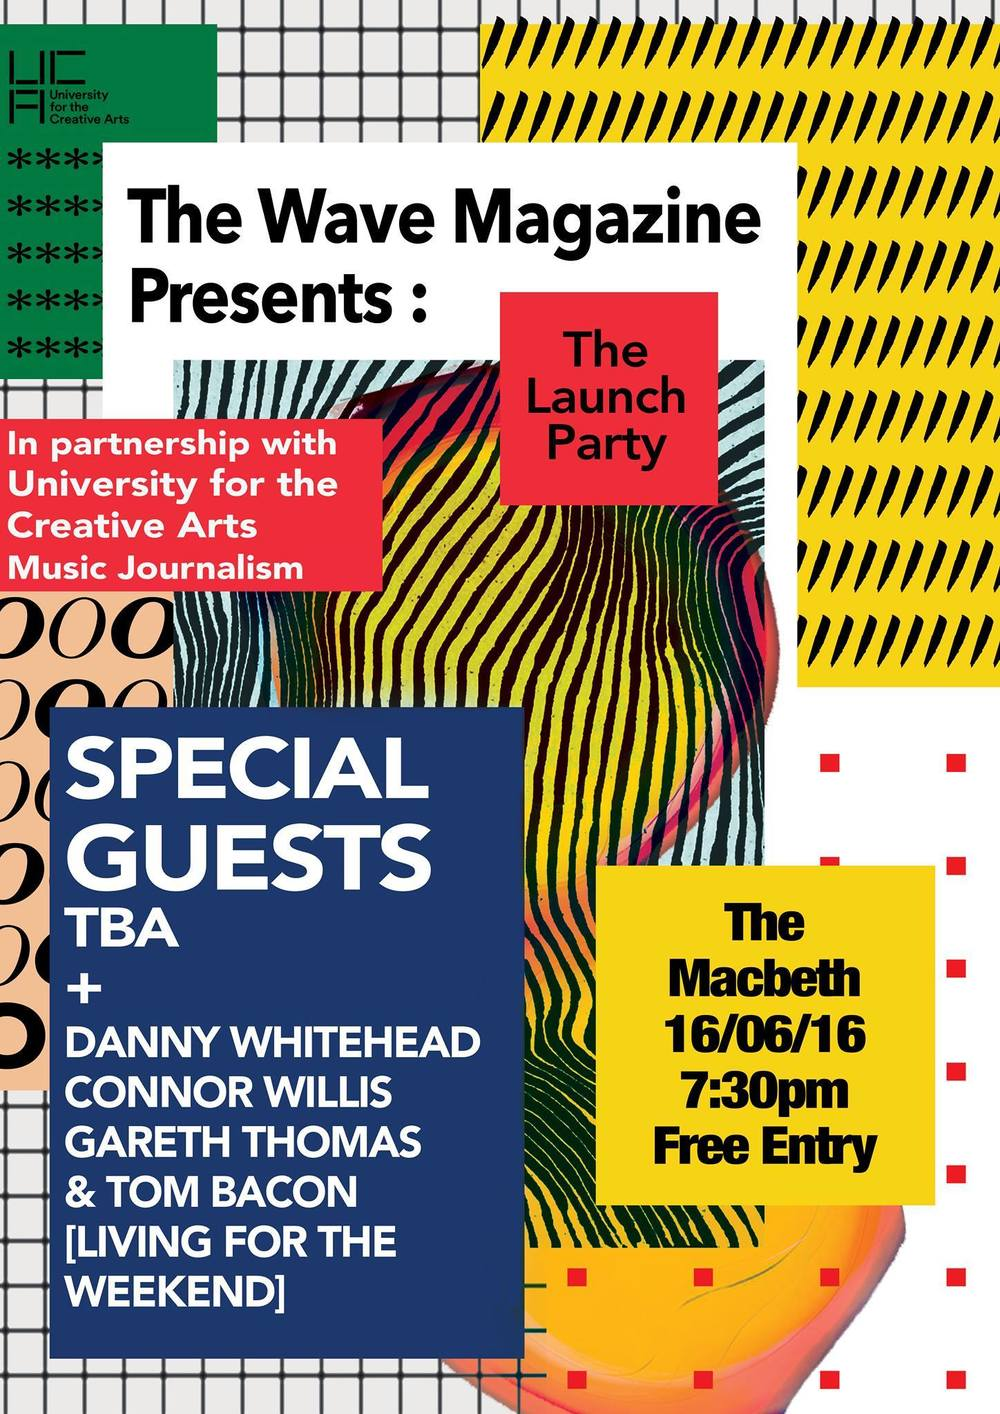 The Wave Magazine is proud to present The Launch Party - in partnership with University for the Creative Arts.  Join us for a night of live music and DJs at one of Hoxton's best venues as we celebrate the launch of issue one of The Wave. Consisting of interviews, features, reviews and more, The Wave is a brand new magazine set up by music journalism students at University for the Creative Arts.  Time: 7.30pm Entry: Free Line up:  Special Guests TBA Check back in May for the announcement of our live band. Described as one of the country's most under-rated bands, the four-piece have been causing quite a scene with their gigs in the recent months, and their latest single has music blogs going mad for them.  Living For The Weekend DJs [Gareth Thomas & Tom Bacon] Gareth and Tom will be playing the best of 80s soul, Northern Soul and everything in between for vinyl only sets. With their nights taking place at the Effra Social in Brixton, we're delighted to have them joining us on the night.  Danny Whitehead Having done DJ sets for some of London's biggest alternative club nights and now a regular resident, Danny is on hand to play the best of indie-rock. With his experience of playing alongside legends such as Alan McGee and others, we know he's going to make the launch party a memorable one.  Connor Willis Connor's sets consist of aritsts you're going to want know about, plus the biggest hits in indie, disco and motown.  Artwork by Elliot Mars